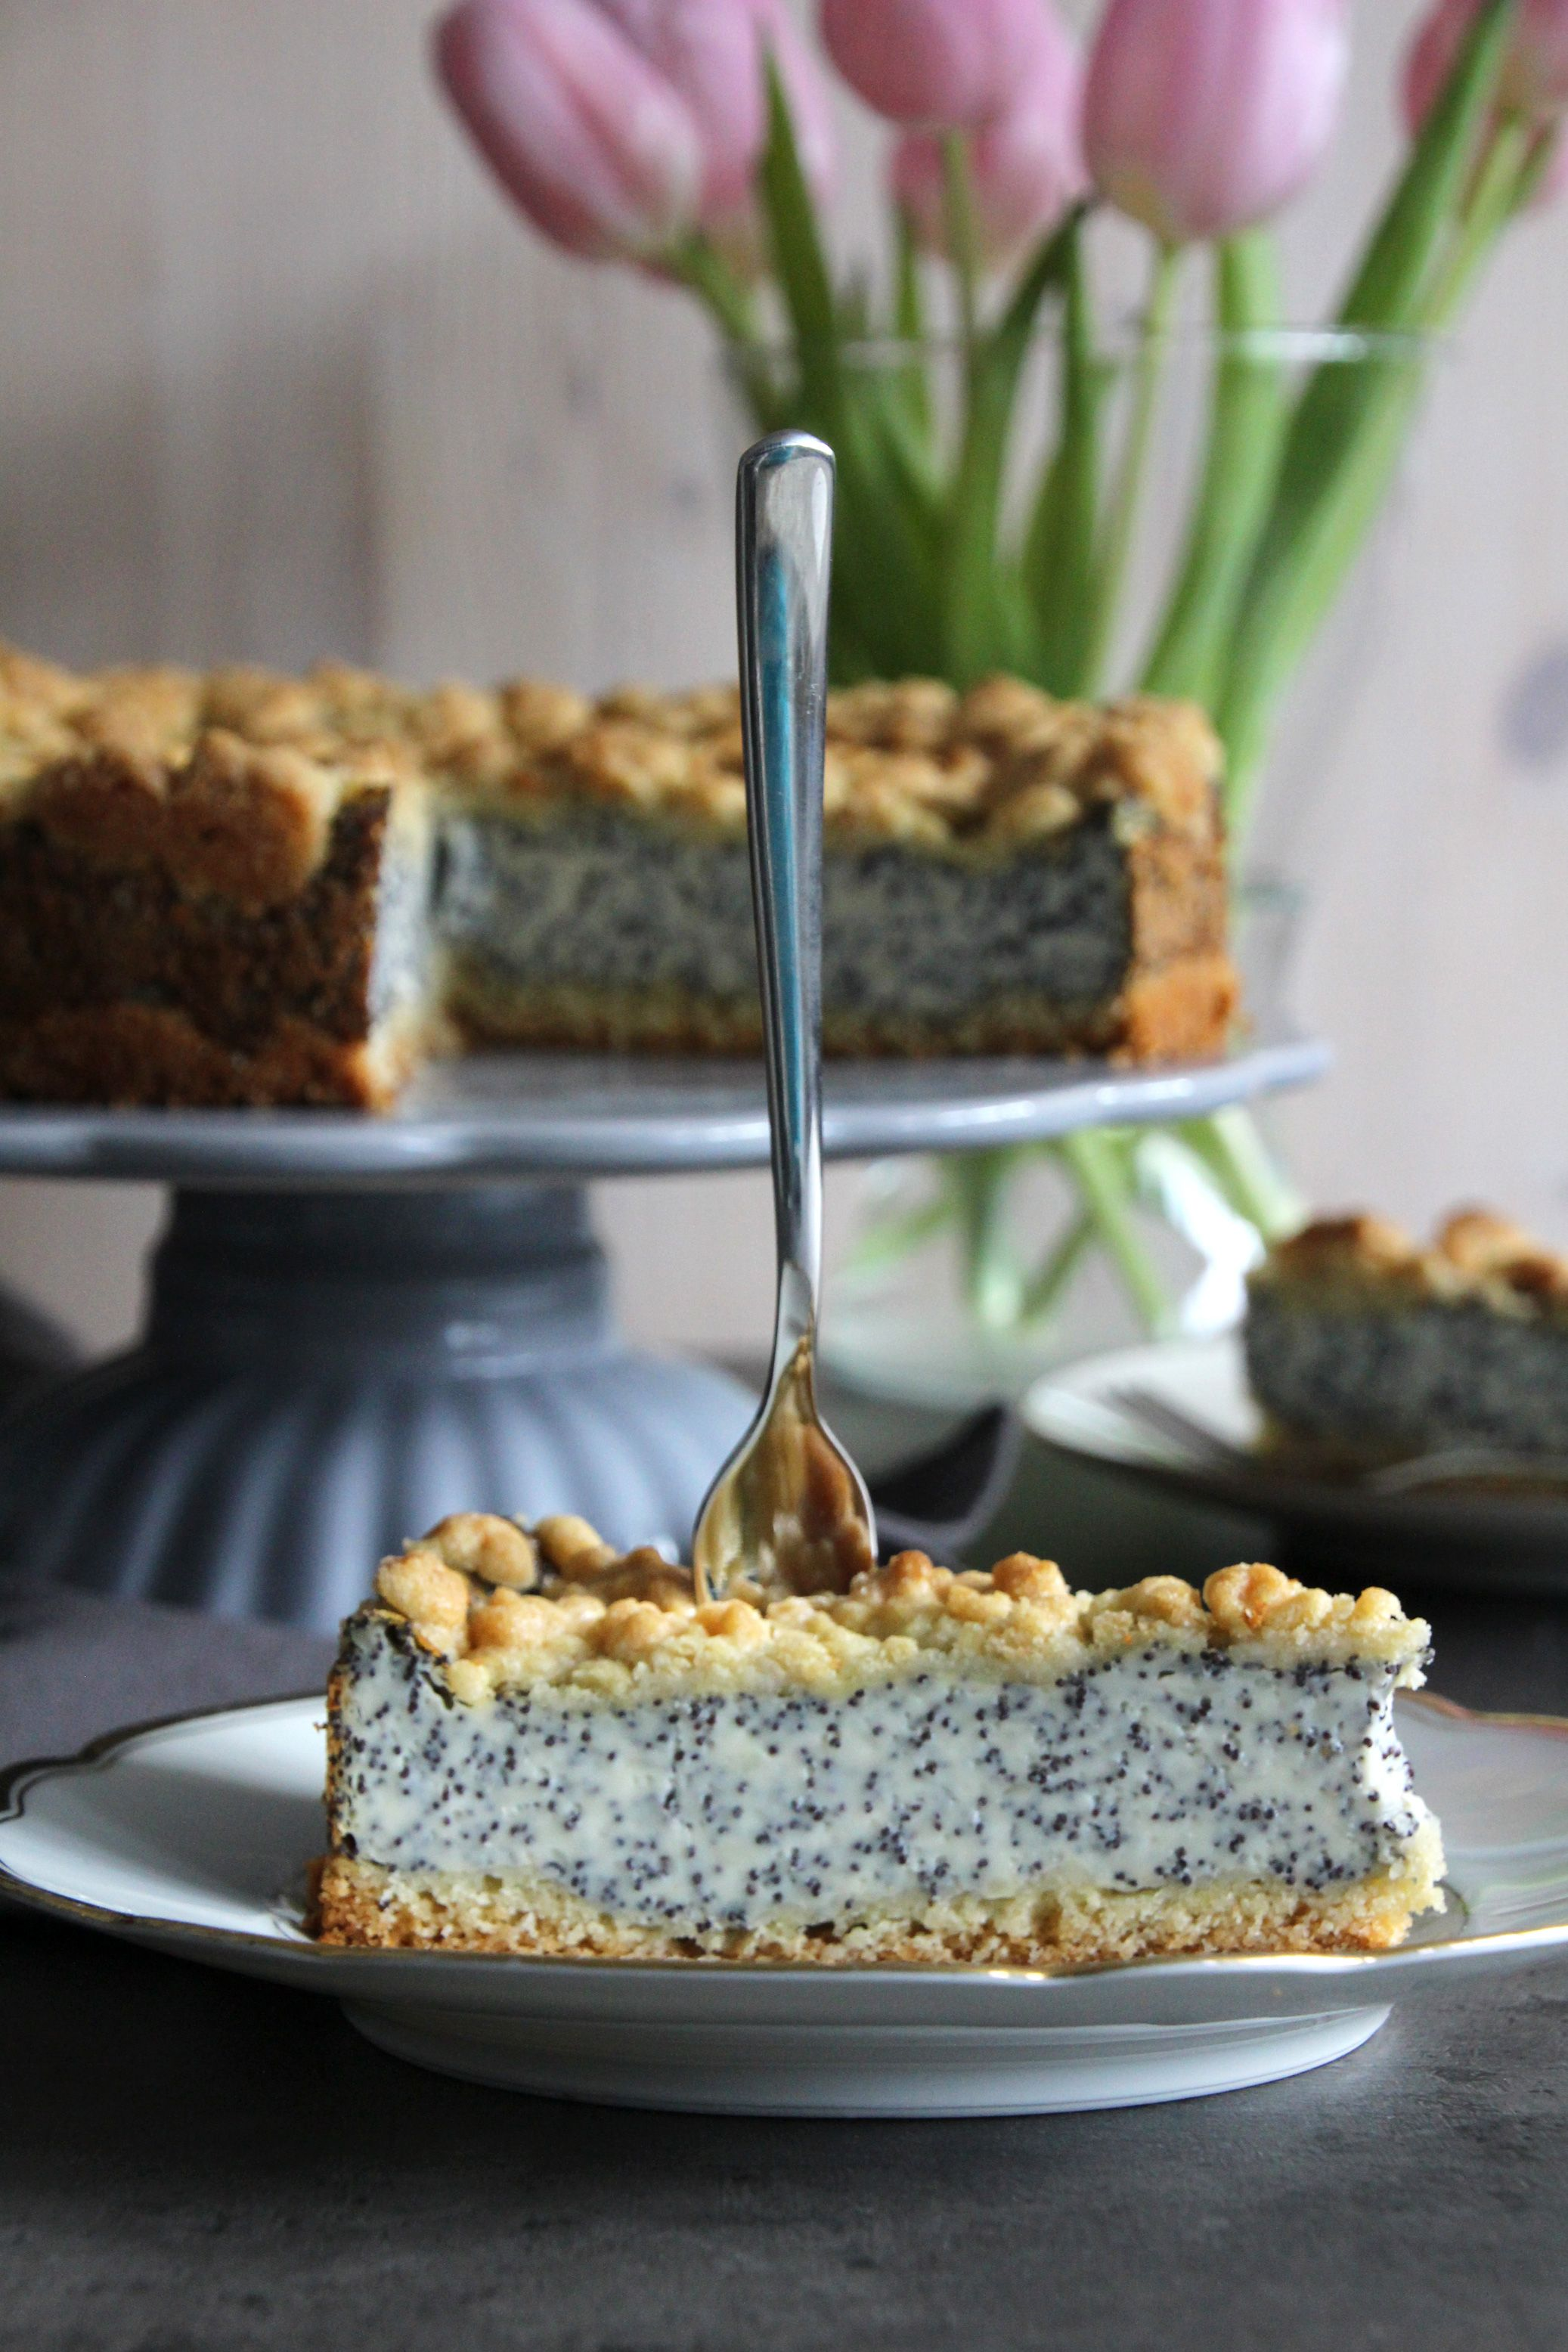 Photo of Poppy seed cake with pudding and sprinkles